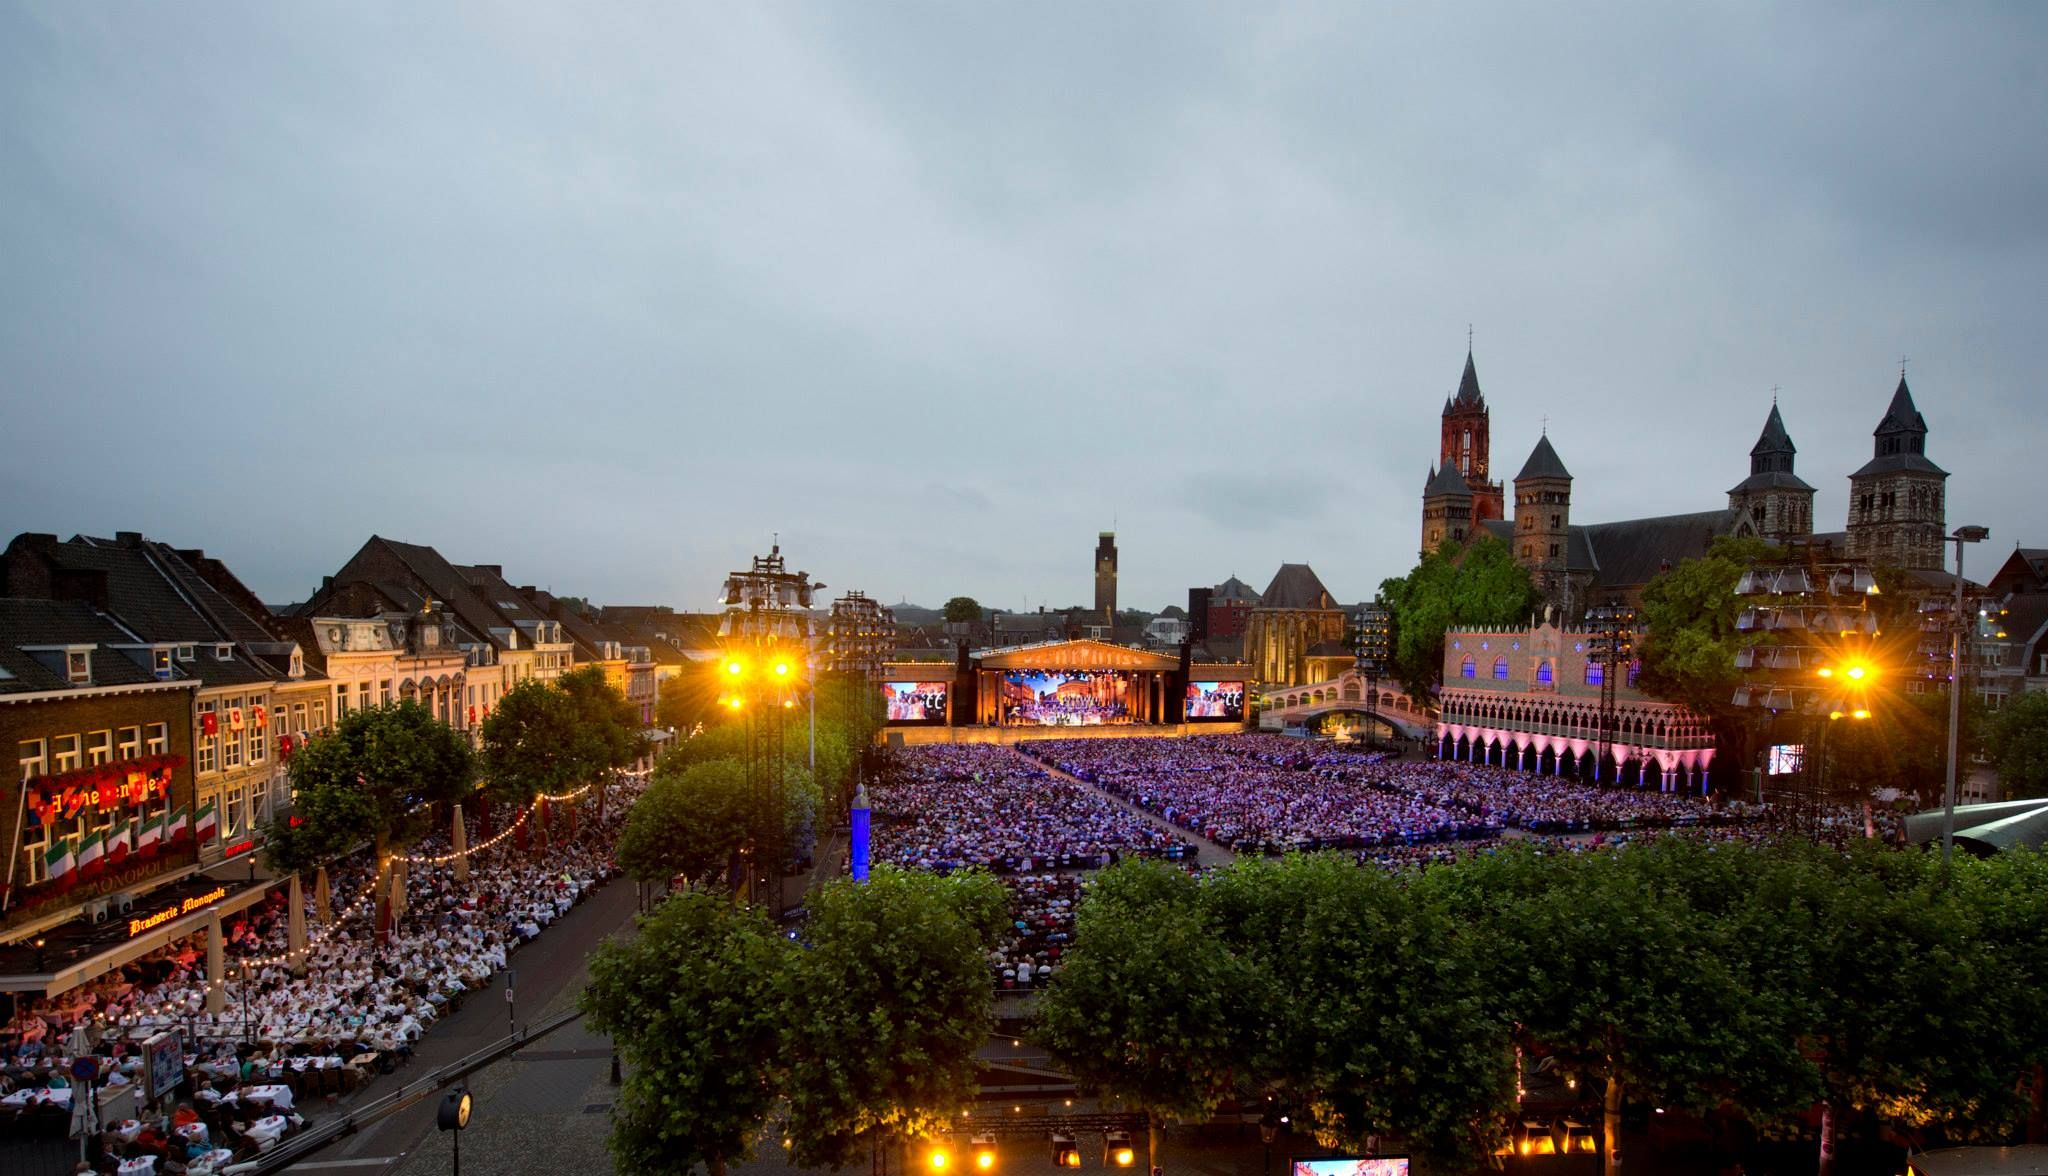 Andr rieu live in maastricht july 12 2014 the sound of romance and love nco ecommerce www - Maastricht mobel ...